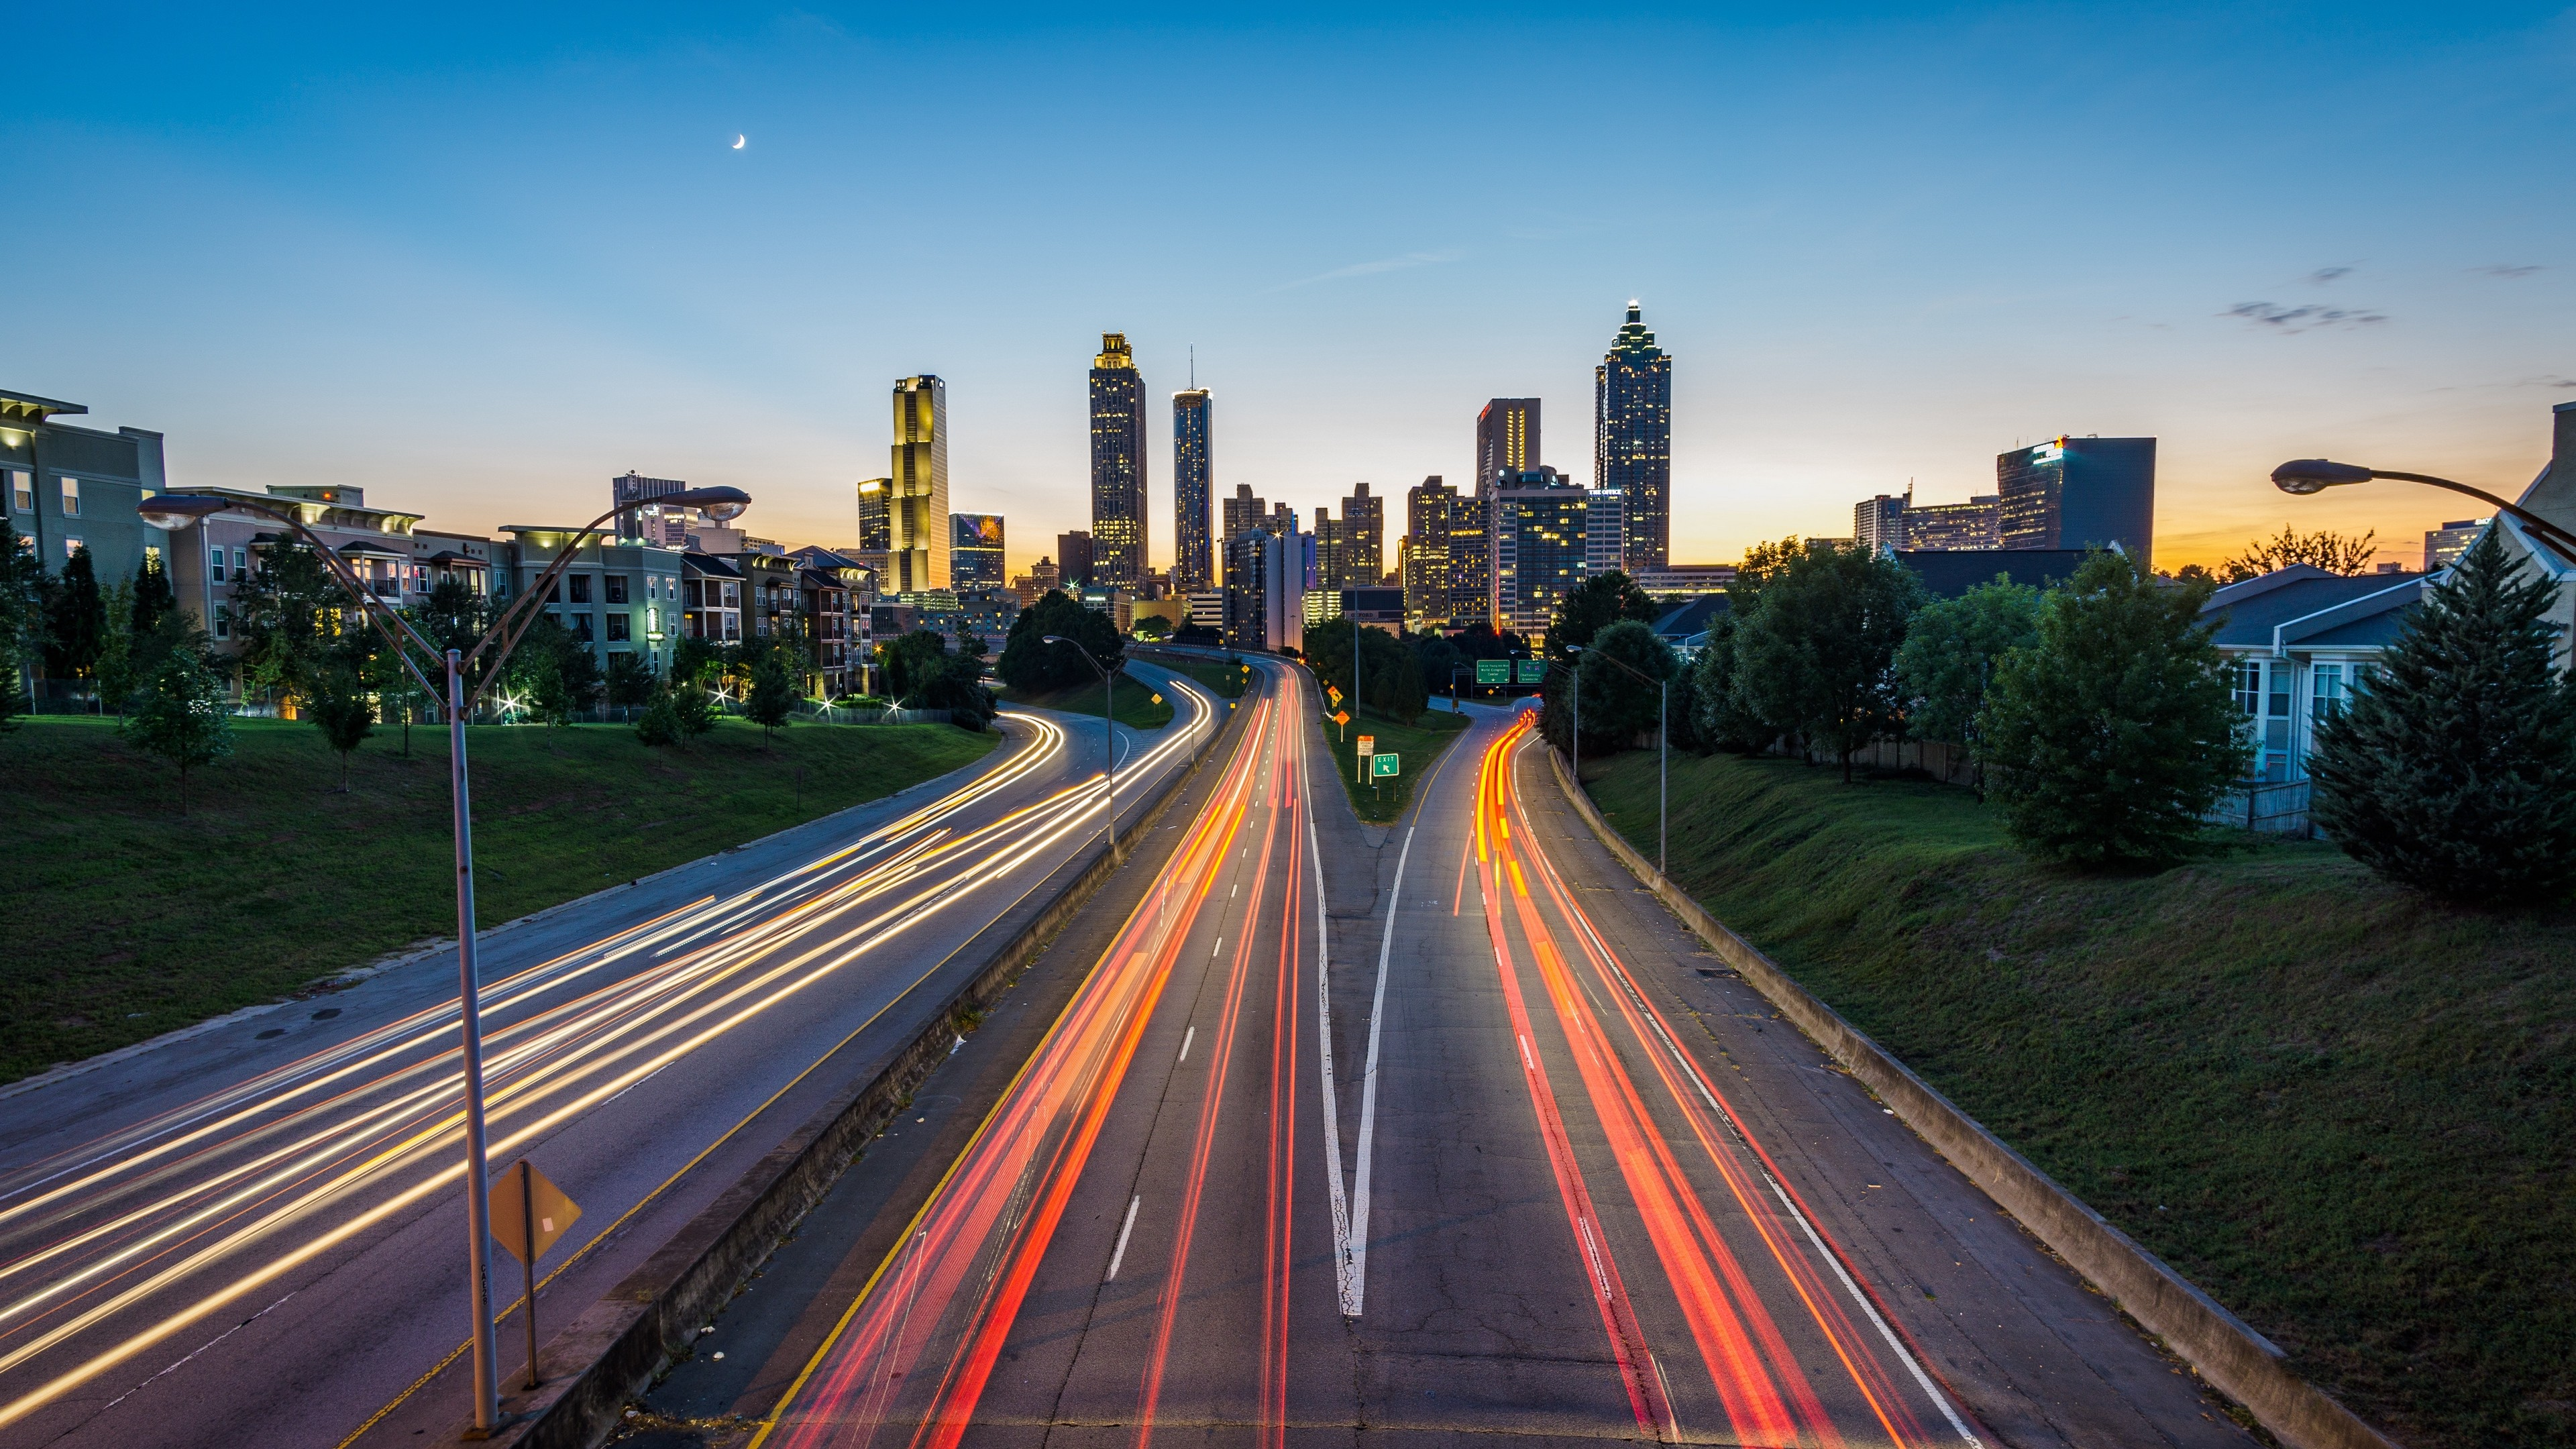 3840x2160  Wallpaper atlanta, usa, road, skyscrapers